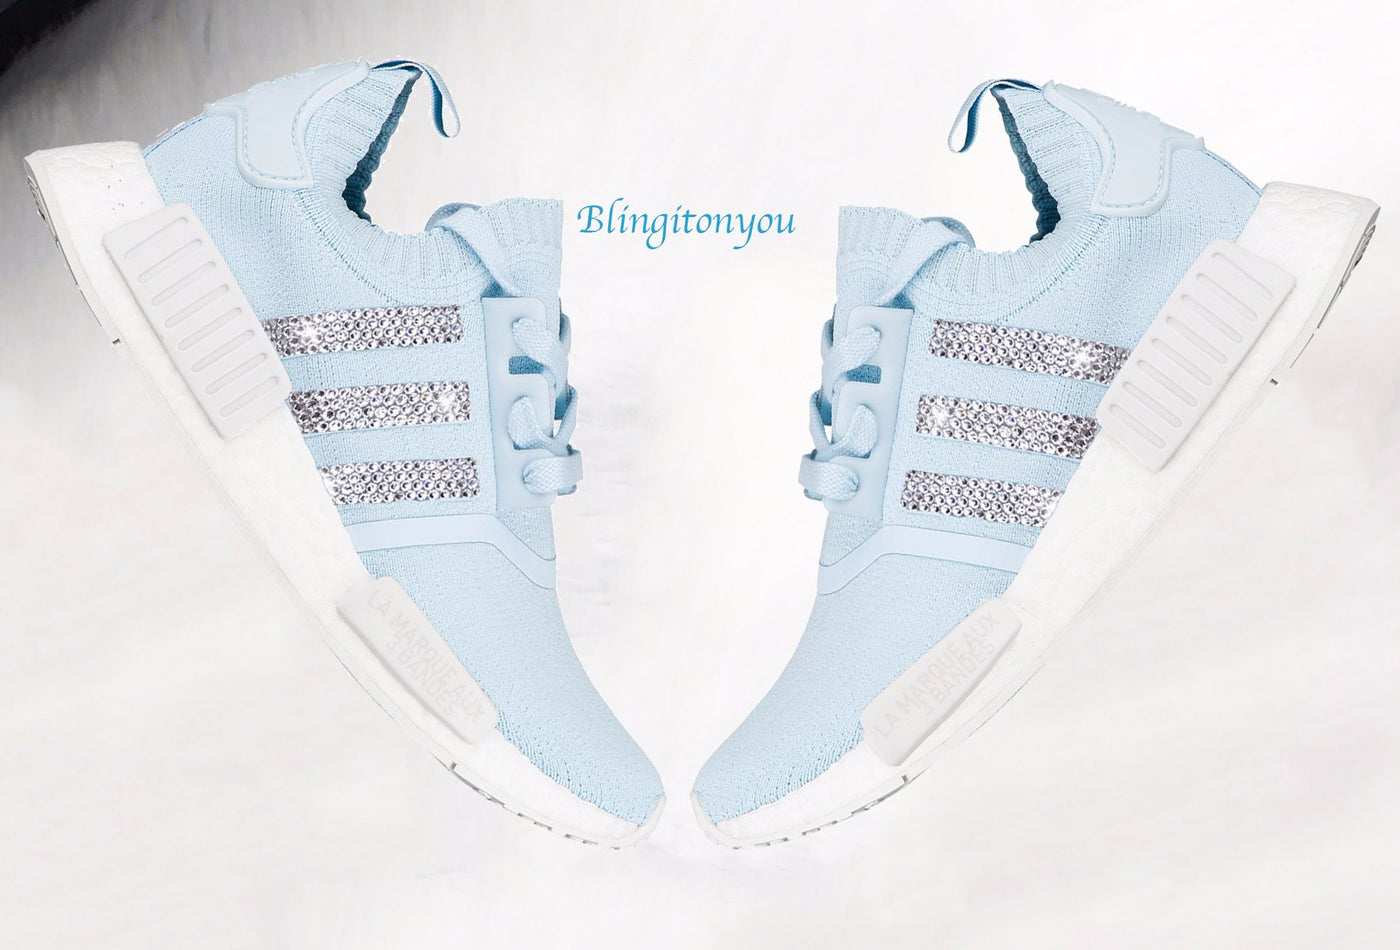 2450b6f75 Swarovski Adidas Originals Women s NMD R1 Primeknit Shoes Custom Bling –  Blingitonyou